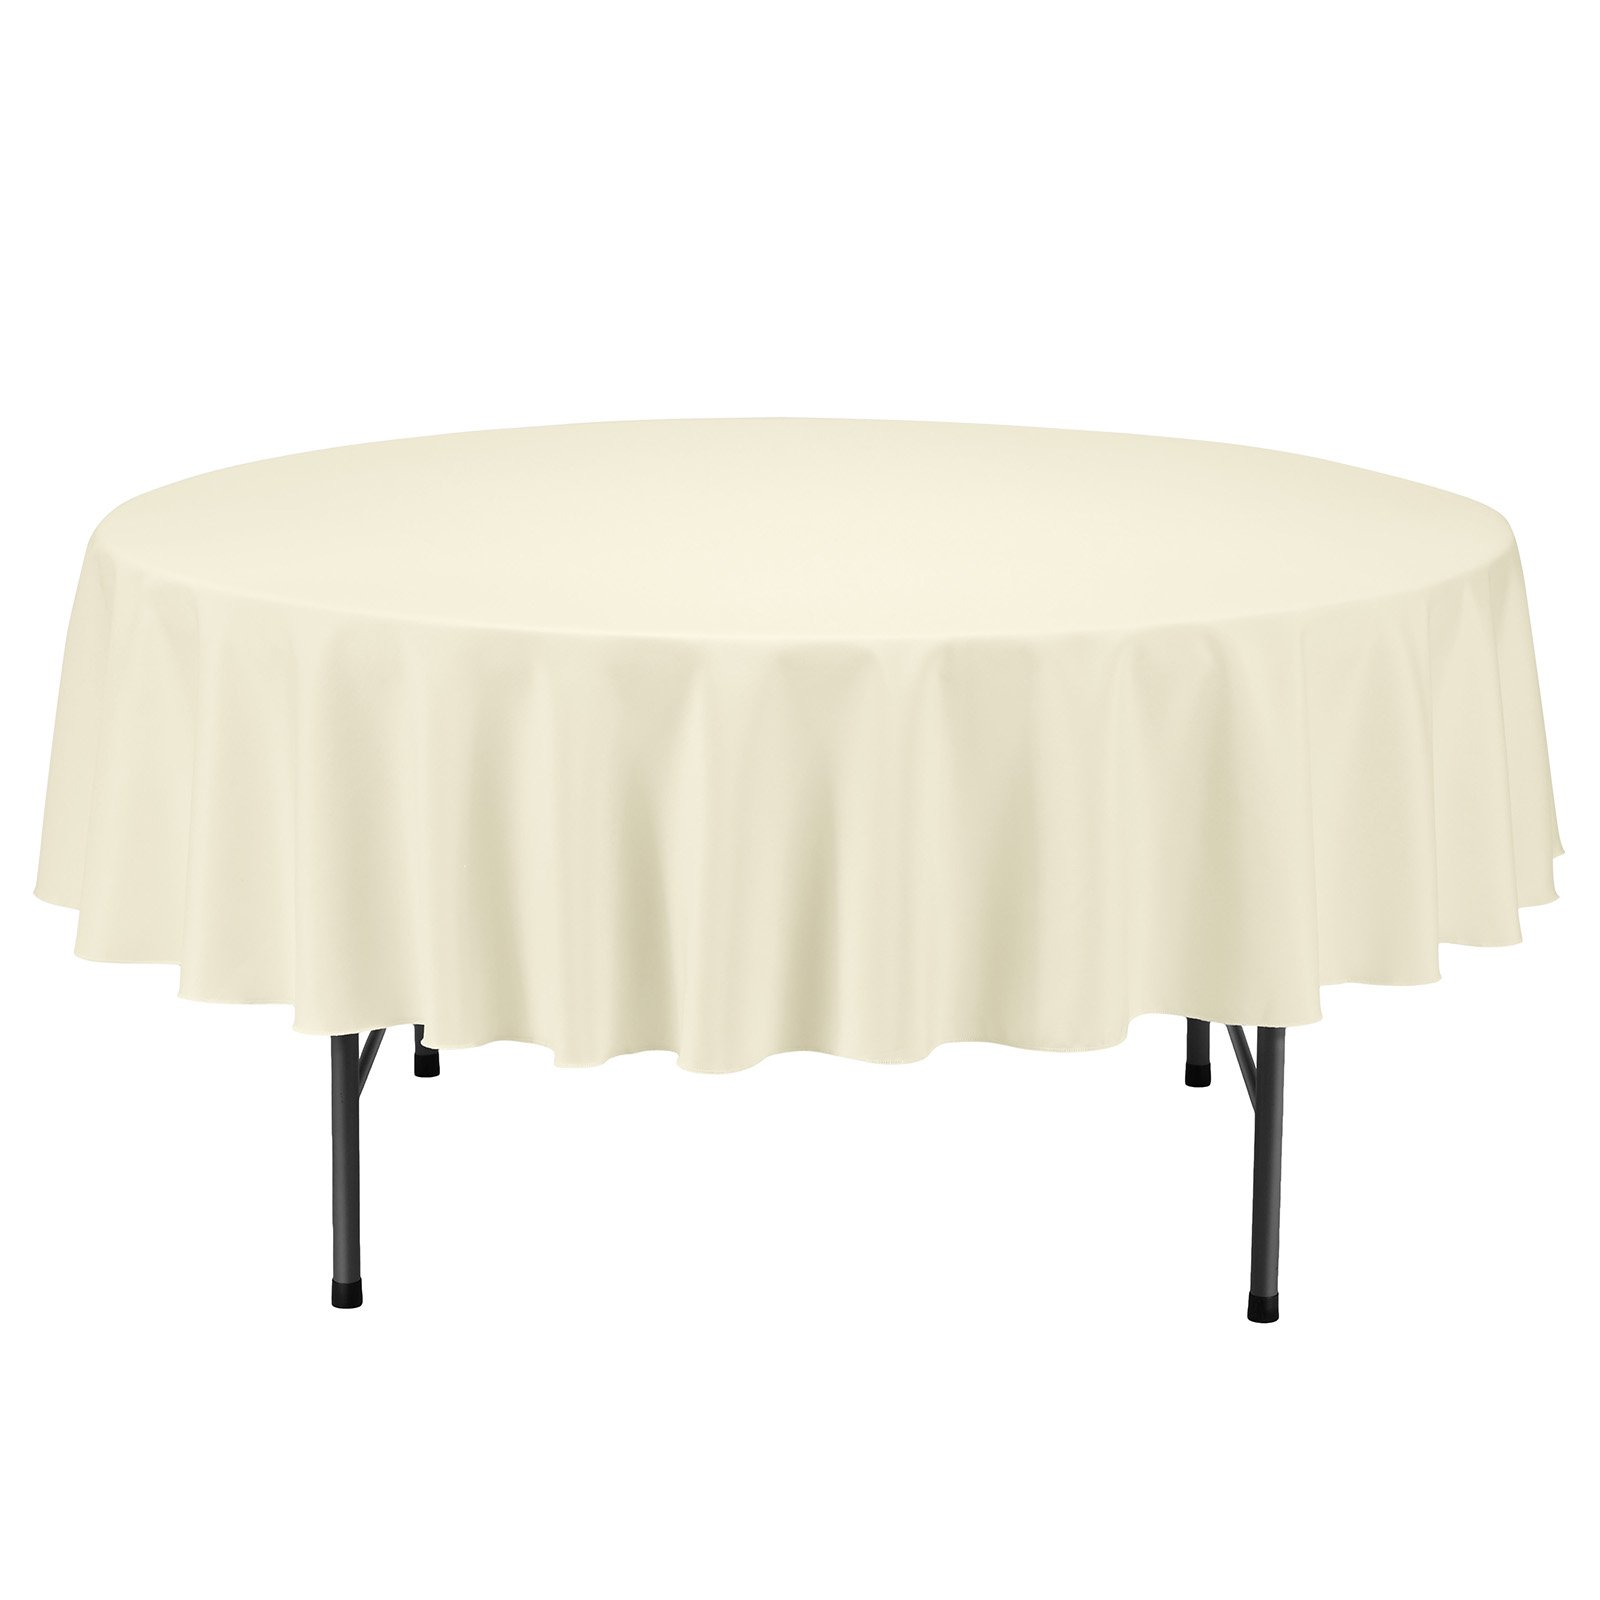 Remedios Round Tablecloth Solid Color Polyester Table Cloth for Bridal Shower Wedding Table – Wrinkle Free Dinner Tablecloth for Restaurant Party Banquet (Light Yellow, 70 inch)